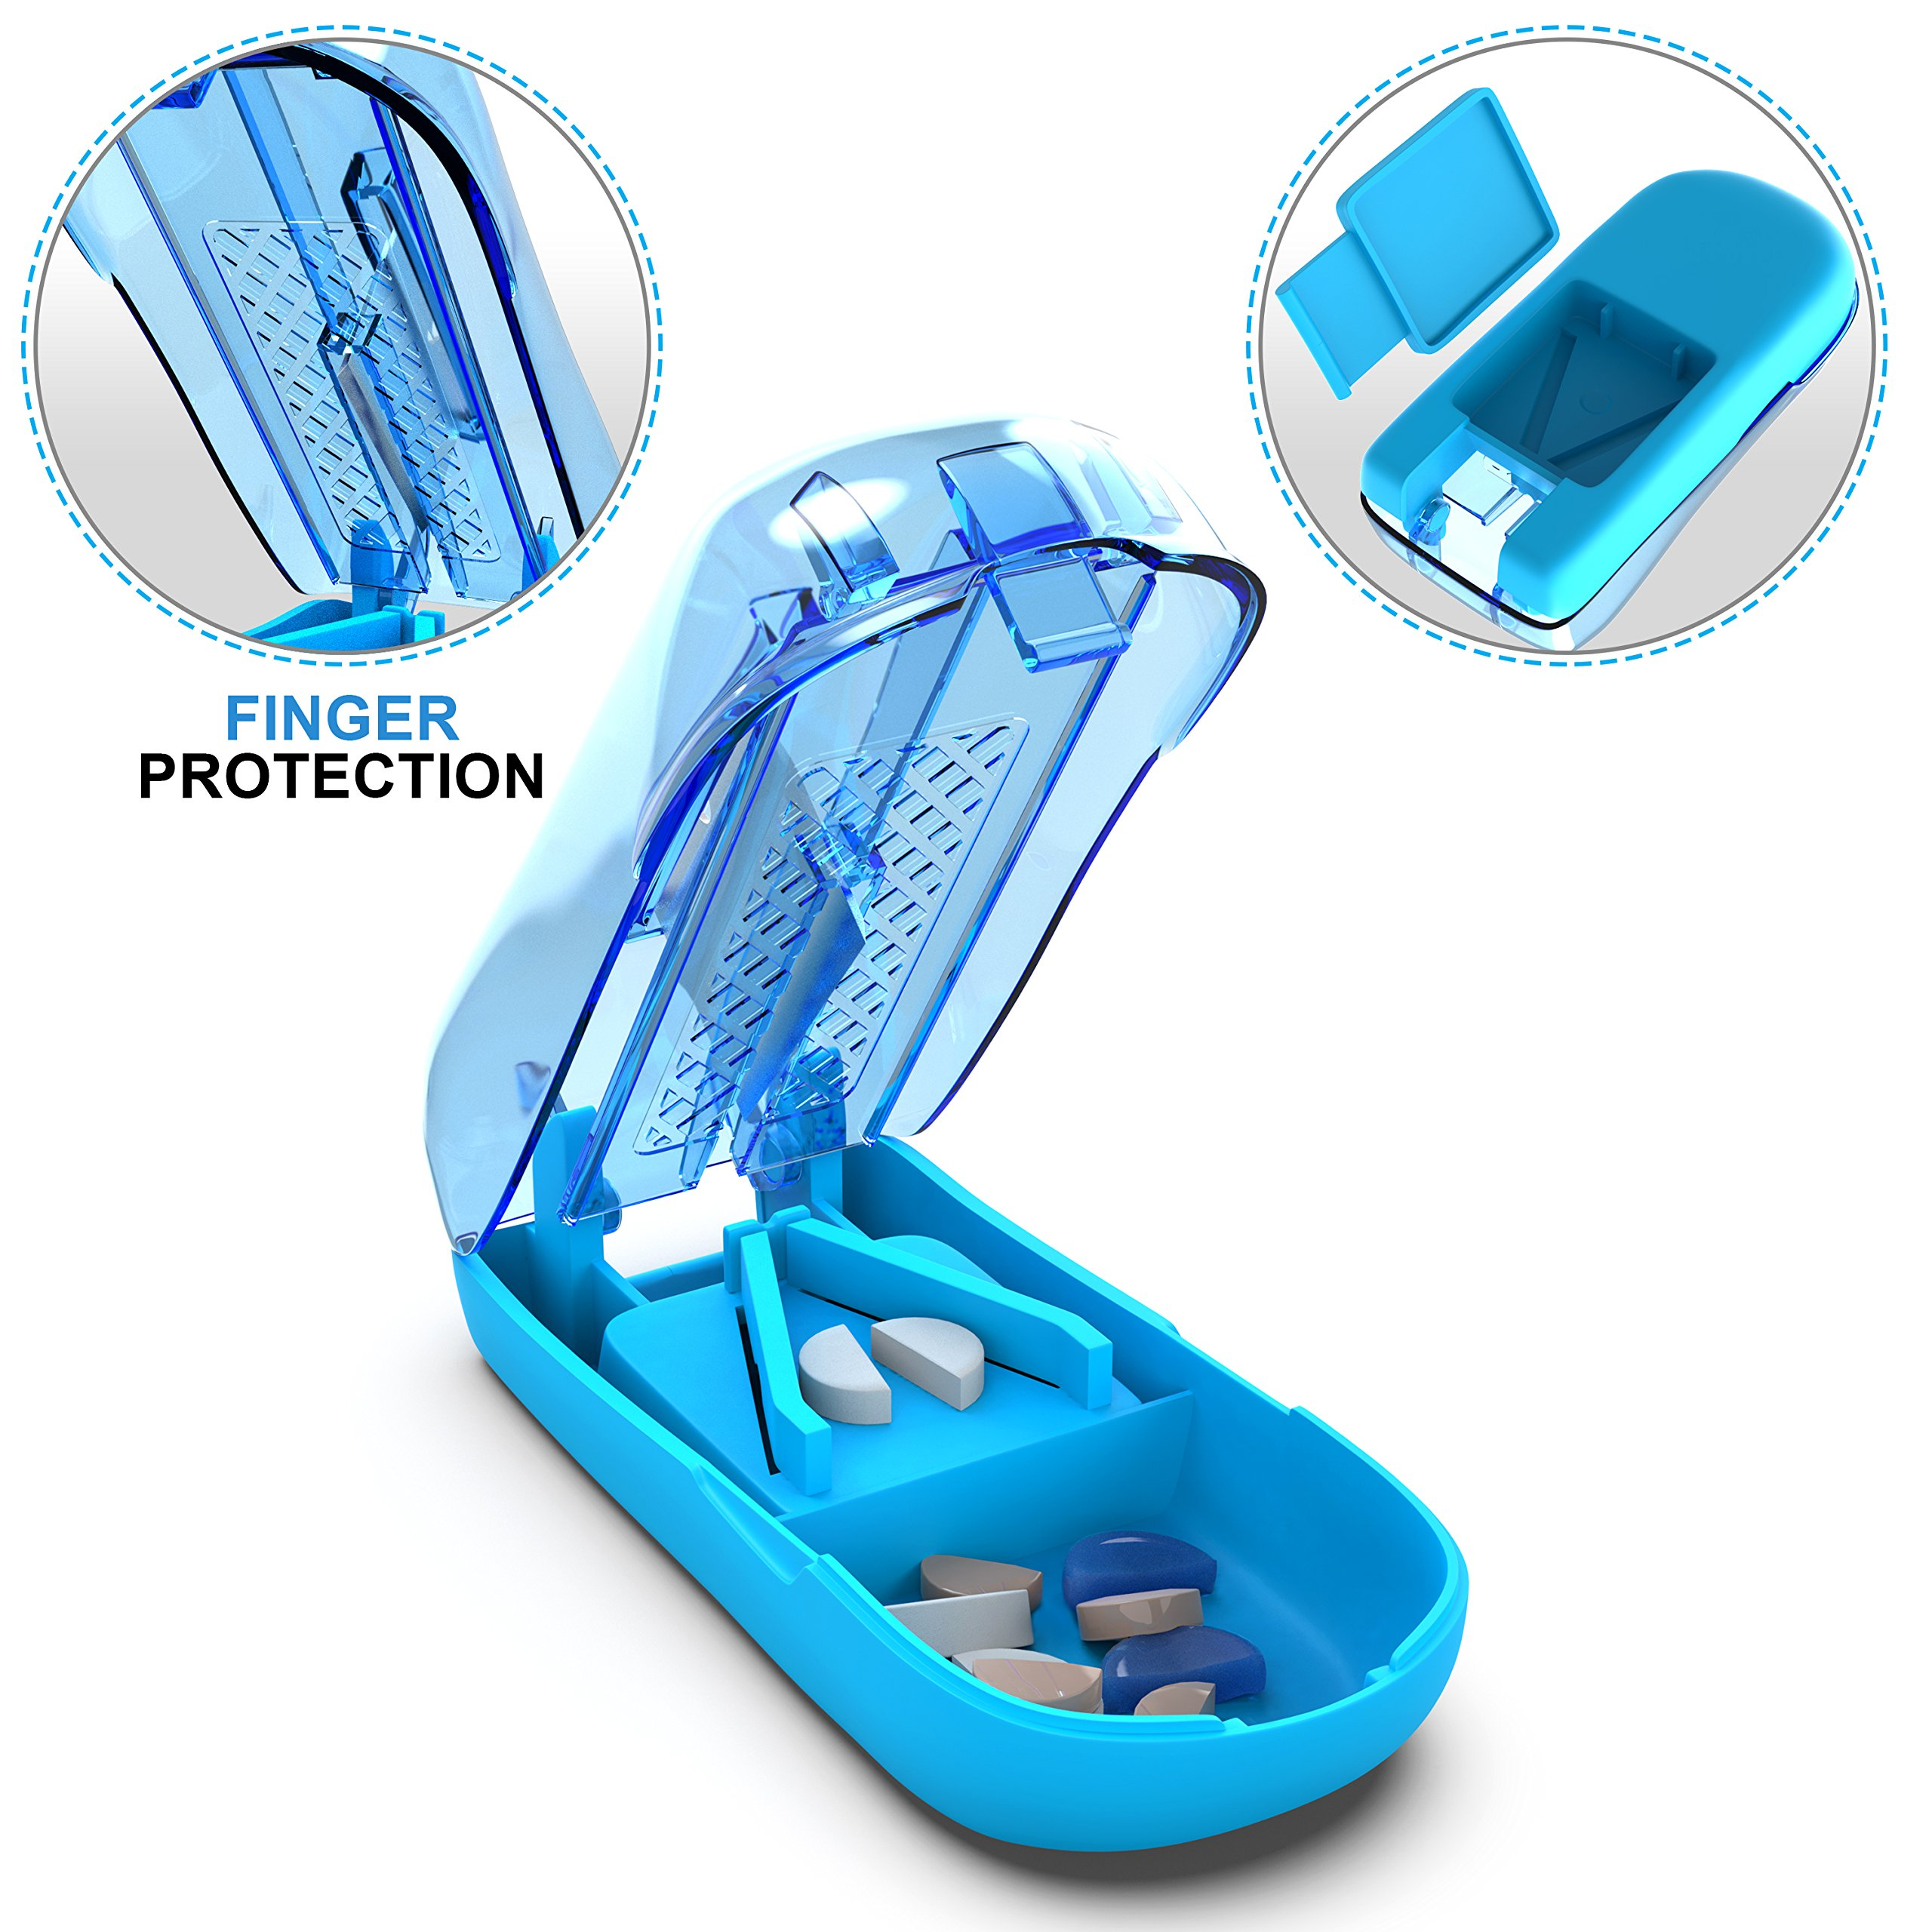 Ergonomic Pill Cutter Splitter with Finger Protection - Cutting Medication Tablets in Half with Small Pill Box Container - Vitamins and Supplement Slicer Chopper Divider …